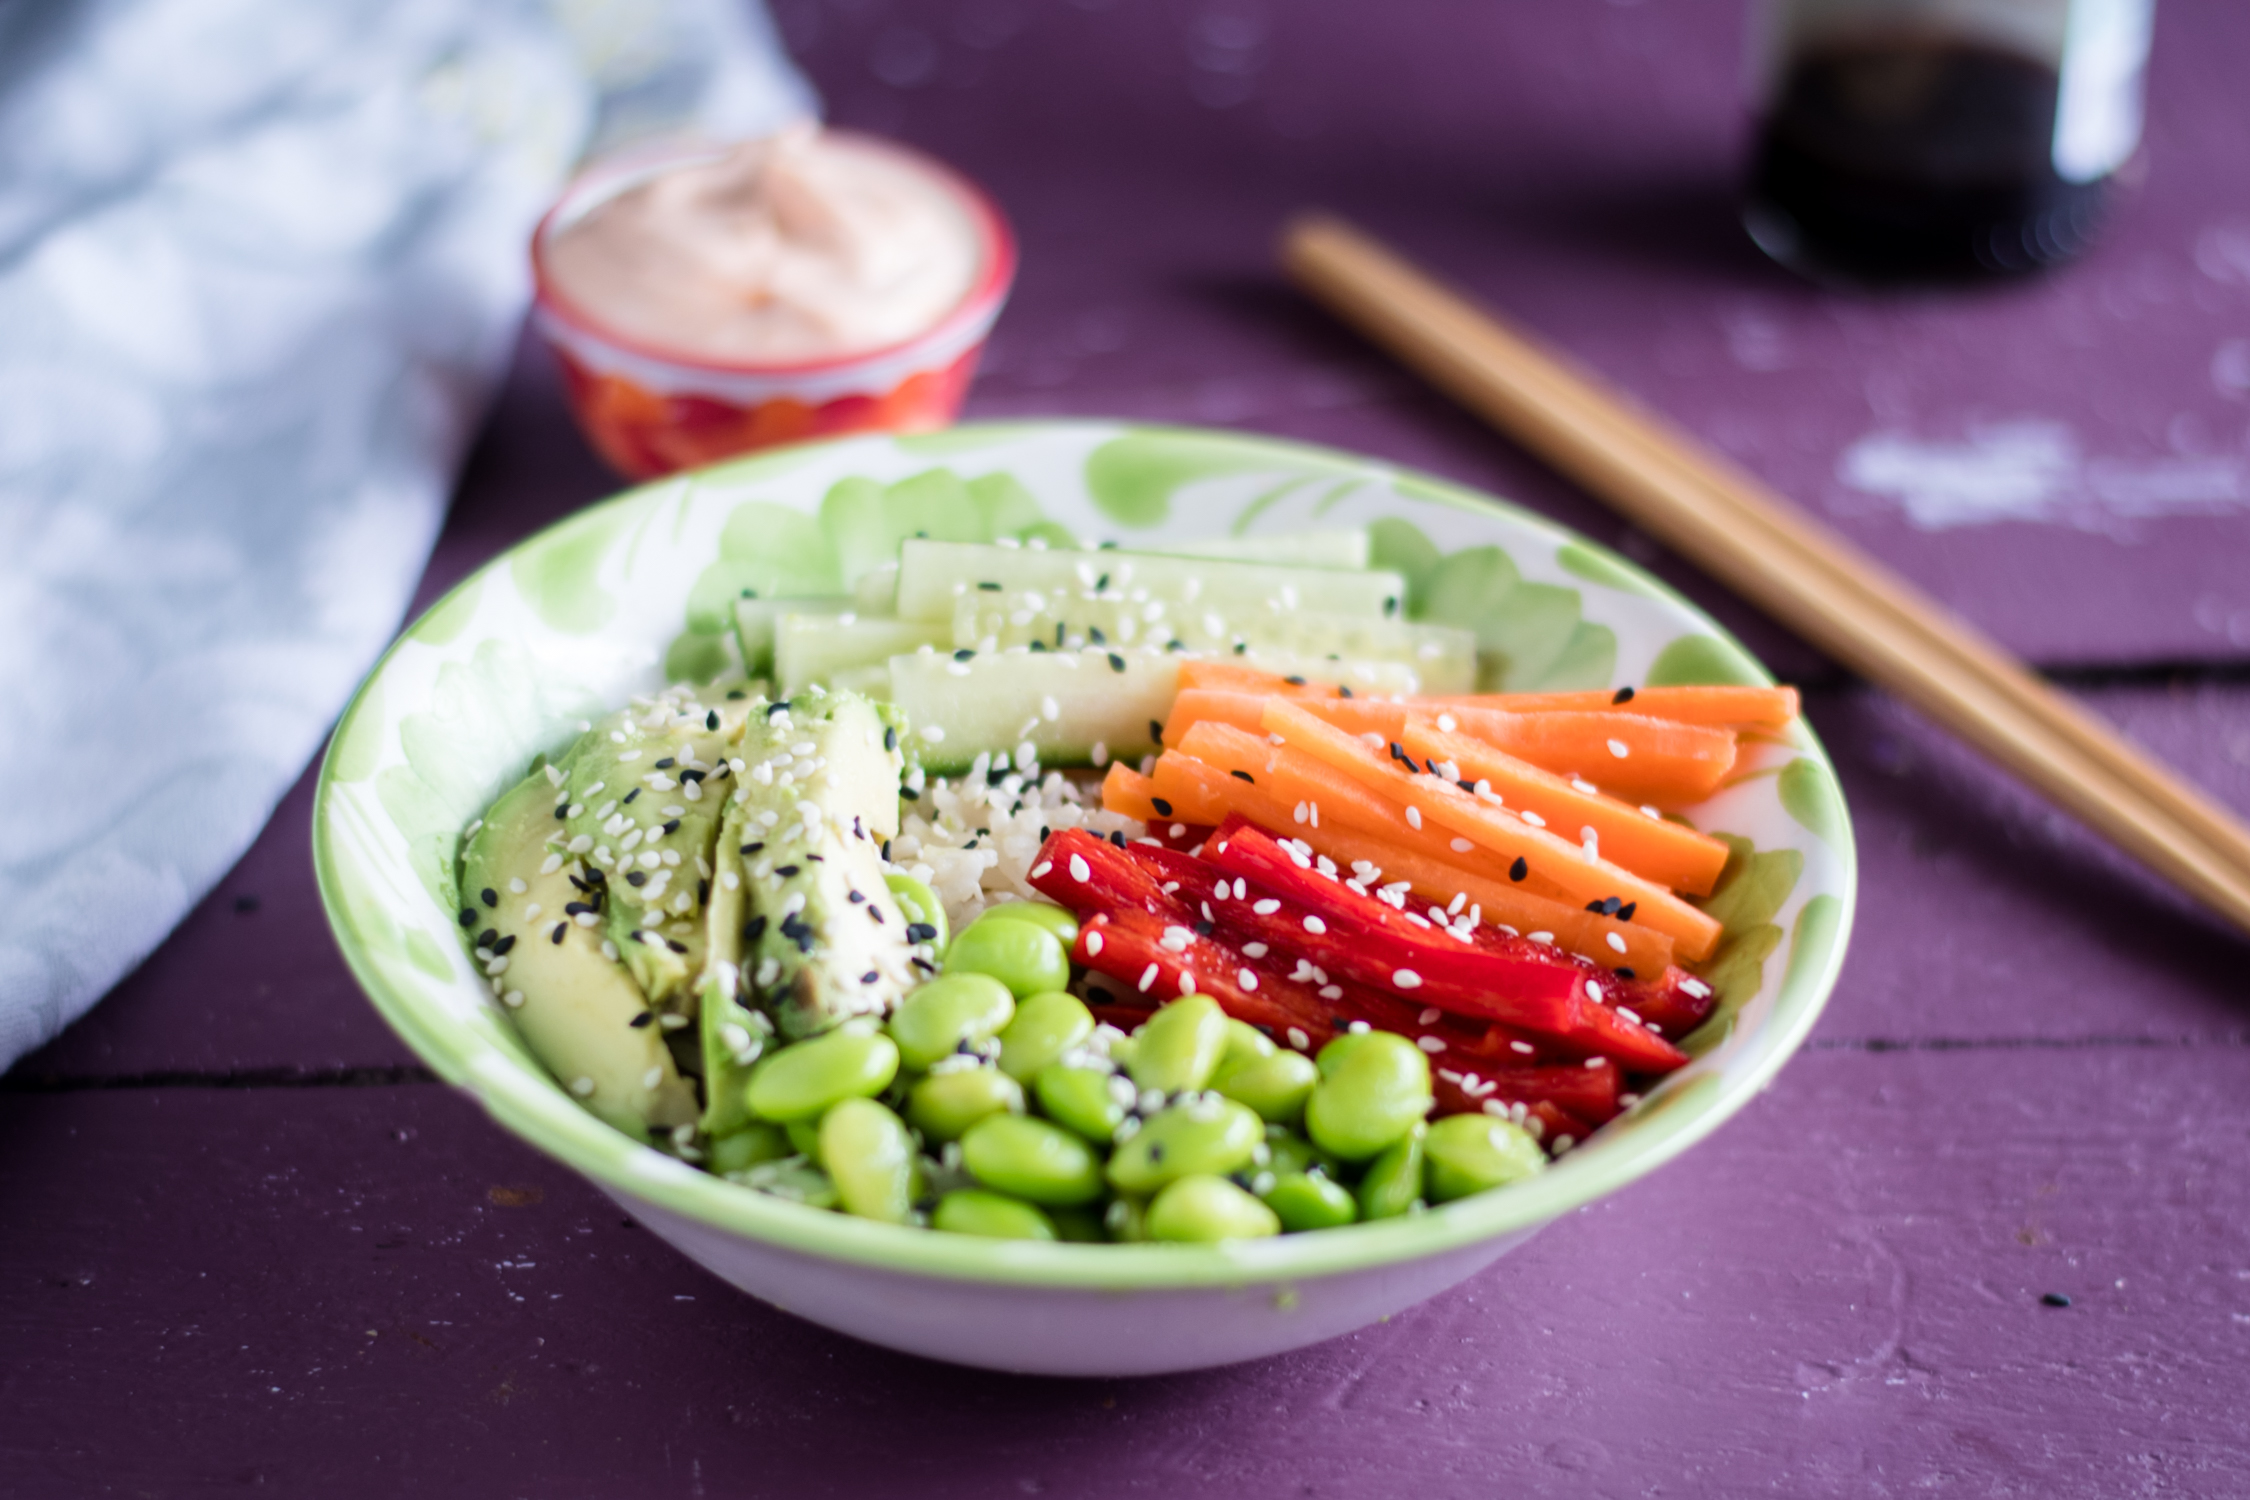 Vegan Sushi Bowls #vegan #recipes #glutenfree #rice